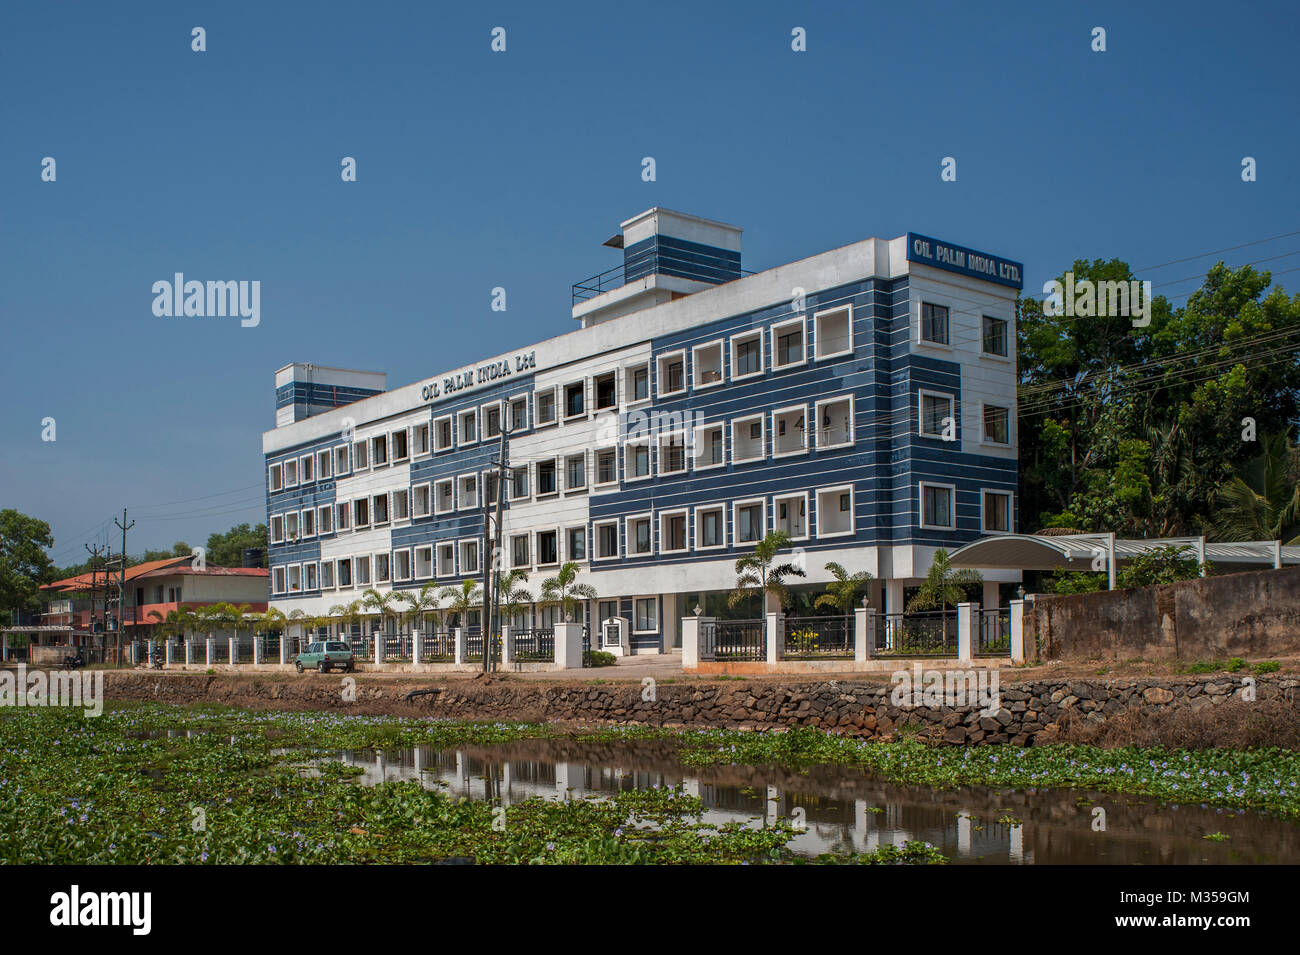 oil palm India ltd, kottayam, kerala, India, Asia - Stock Image